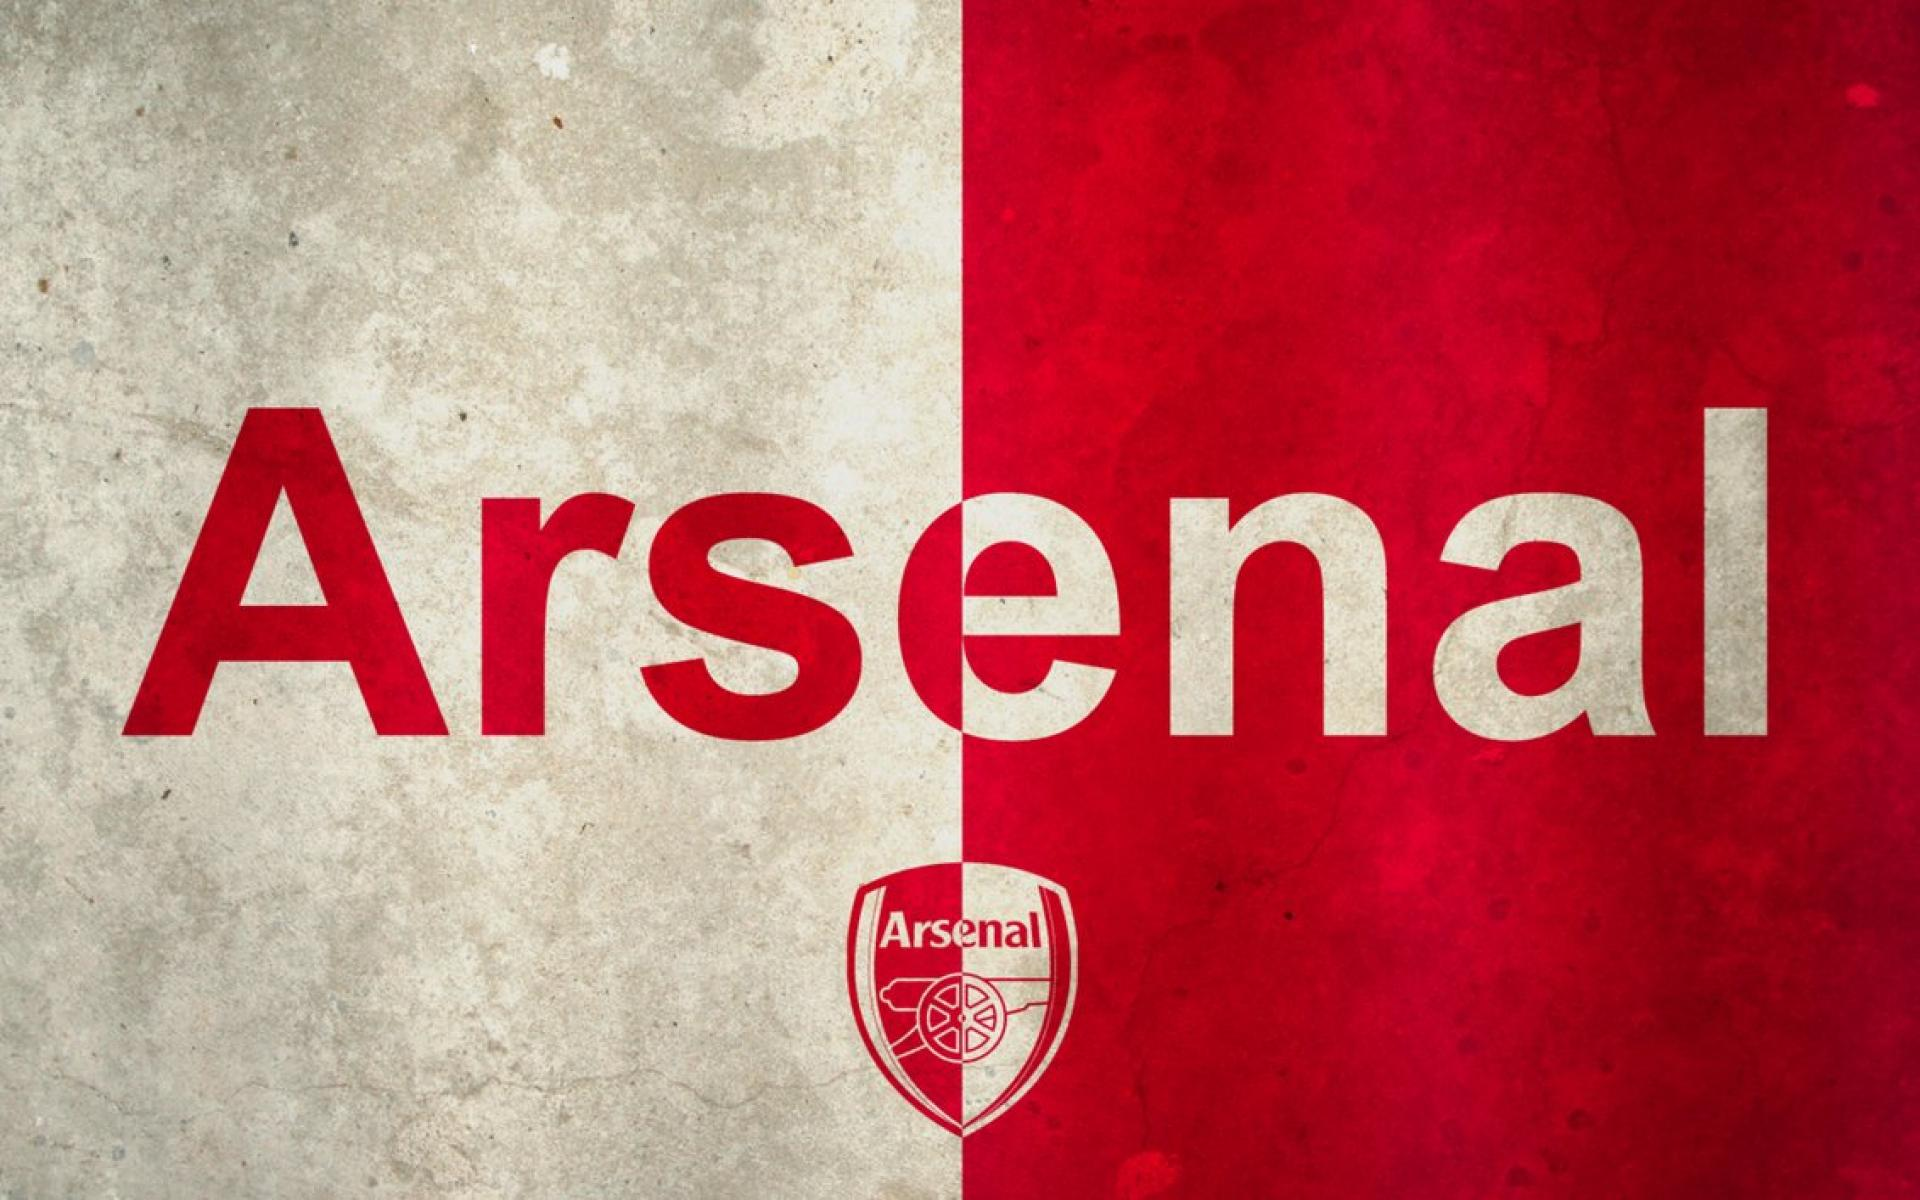 free arsenal backgrounds pixelstalk net